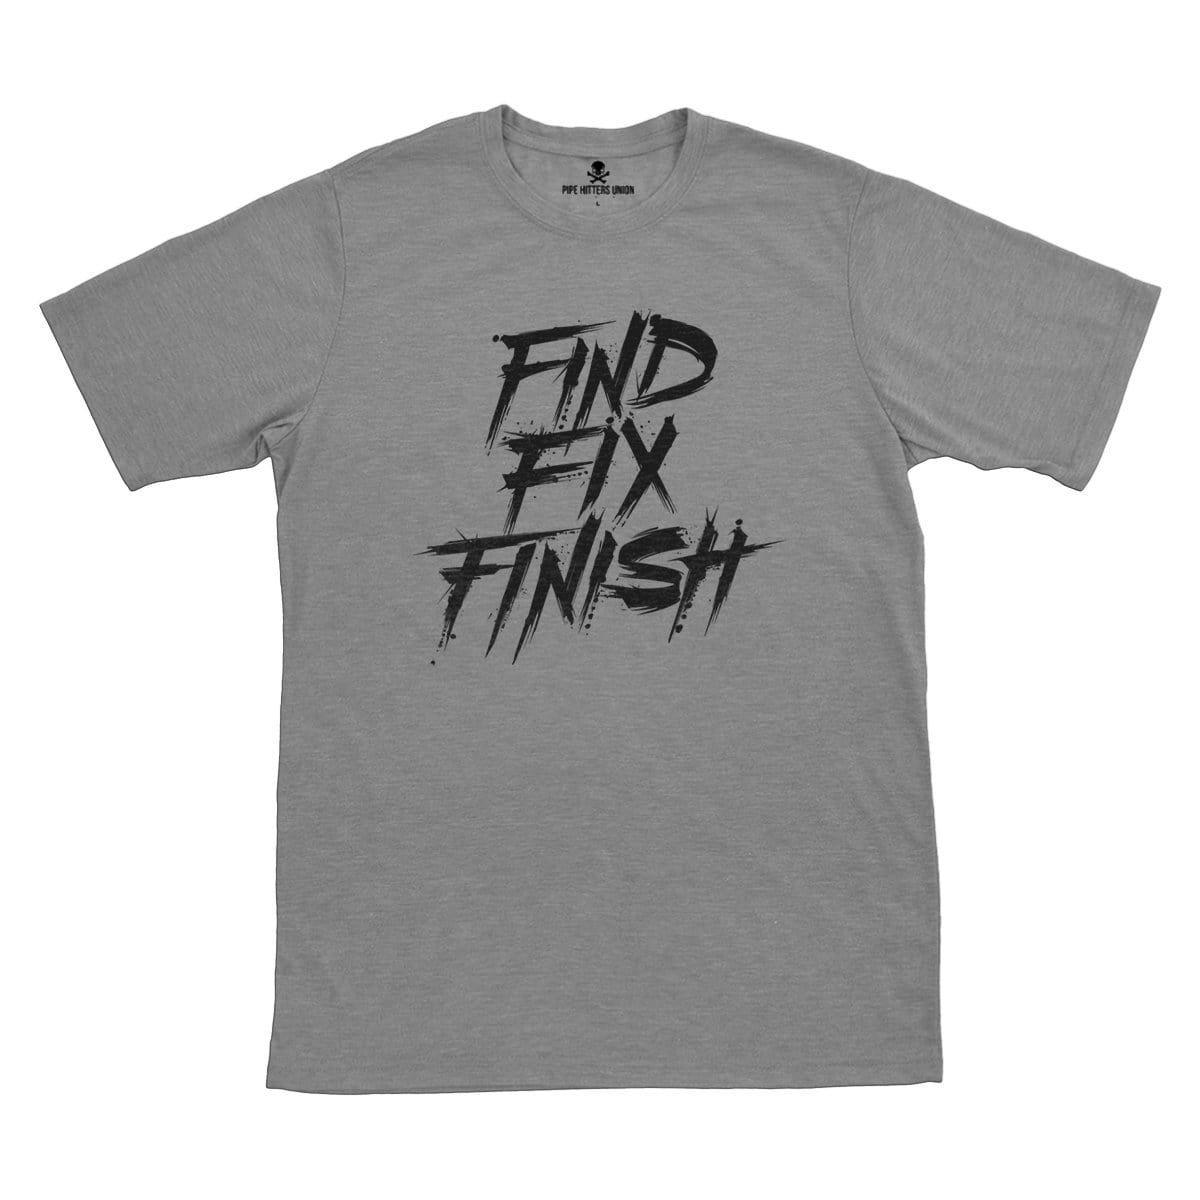 Find Fix Finish - Grey - T-Shirts - Pipe Hitters Union